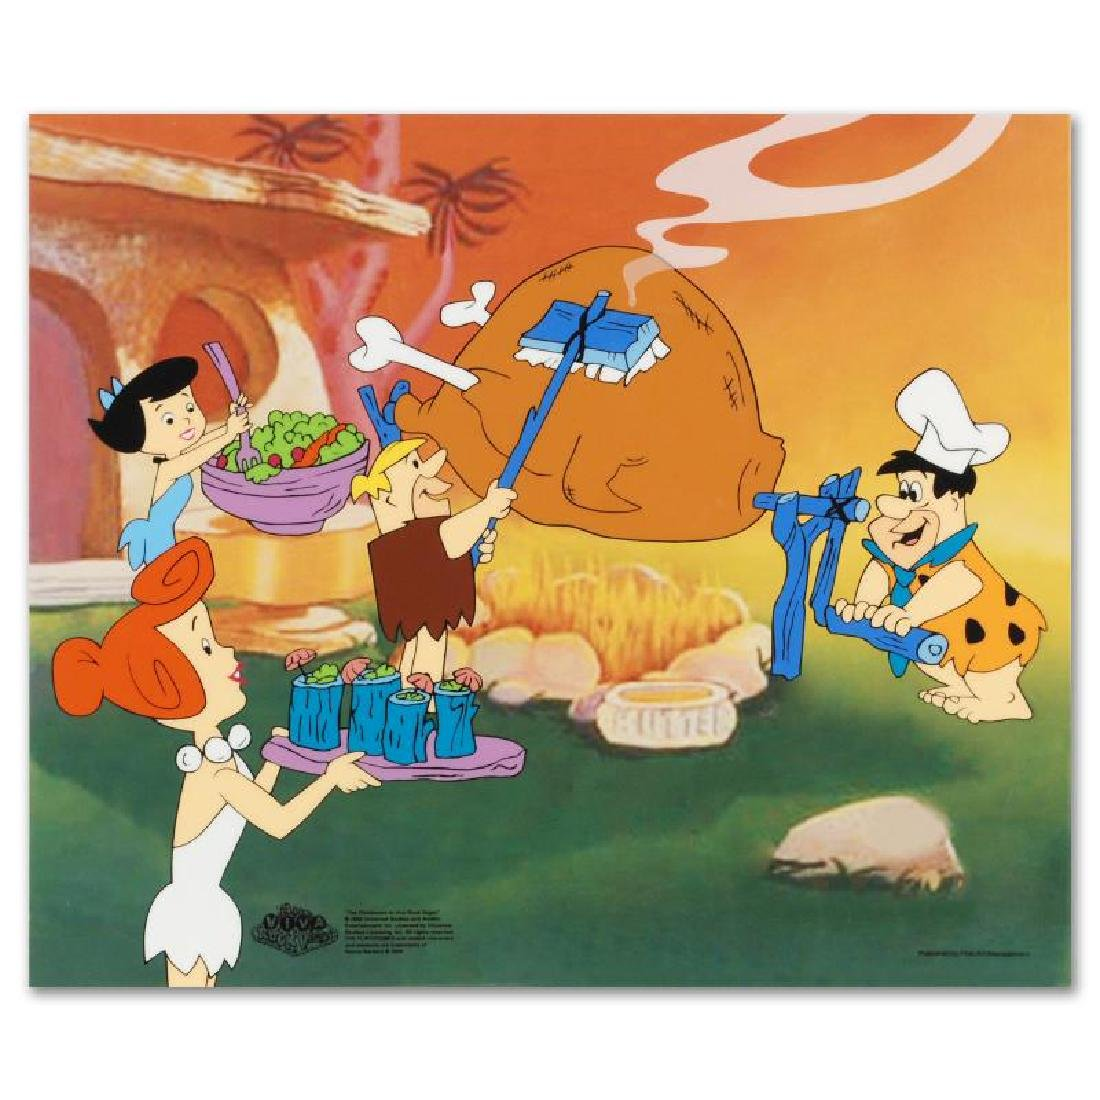 Flintstones Barbecue Limited Edition Sericel from the - 3